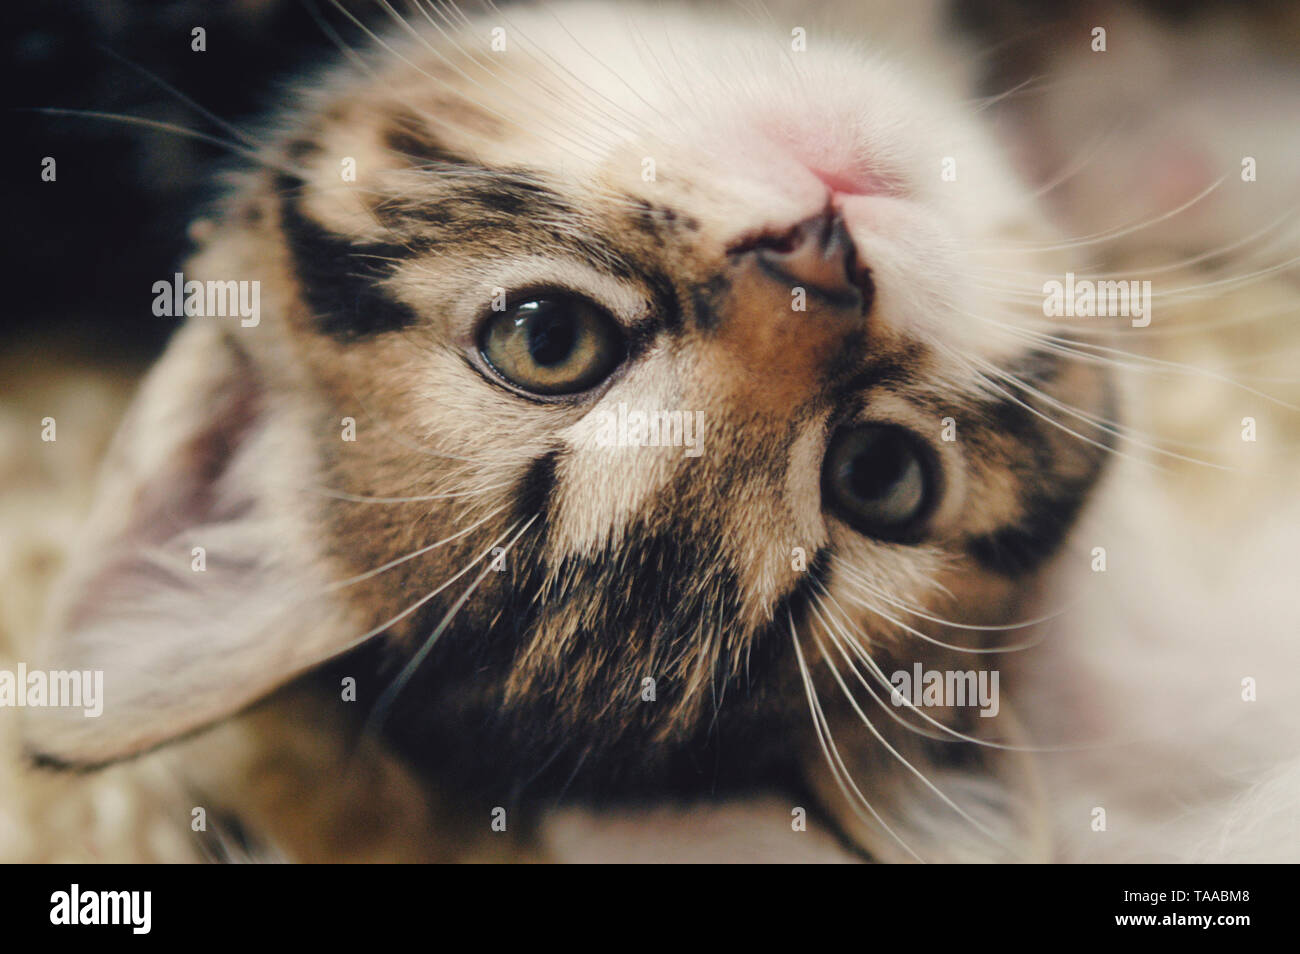 Cat Baby Face - Stock Image